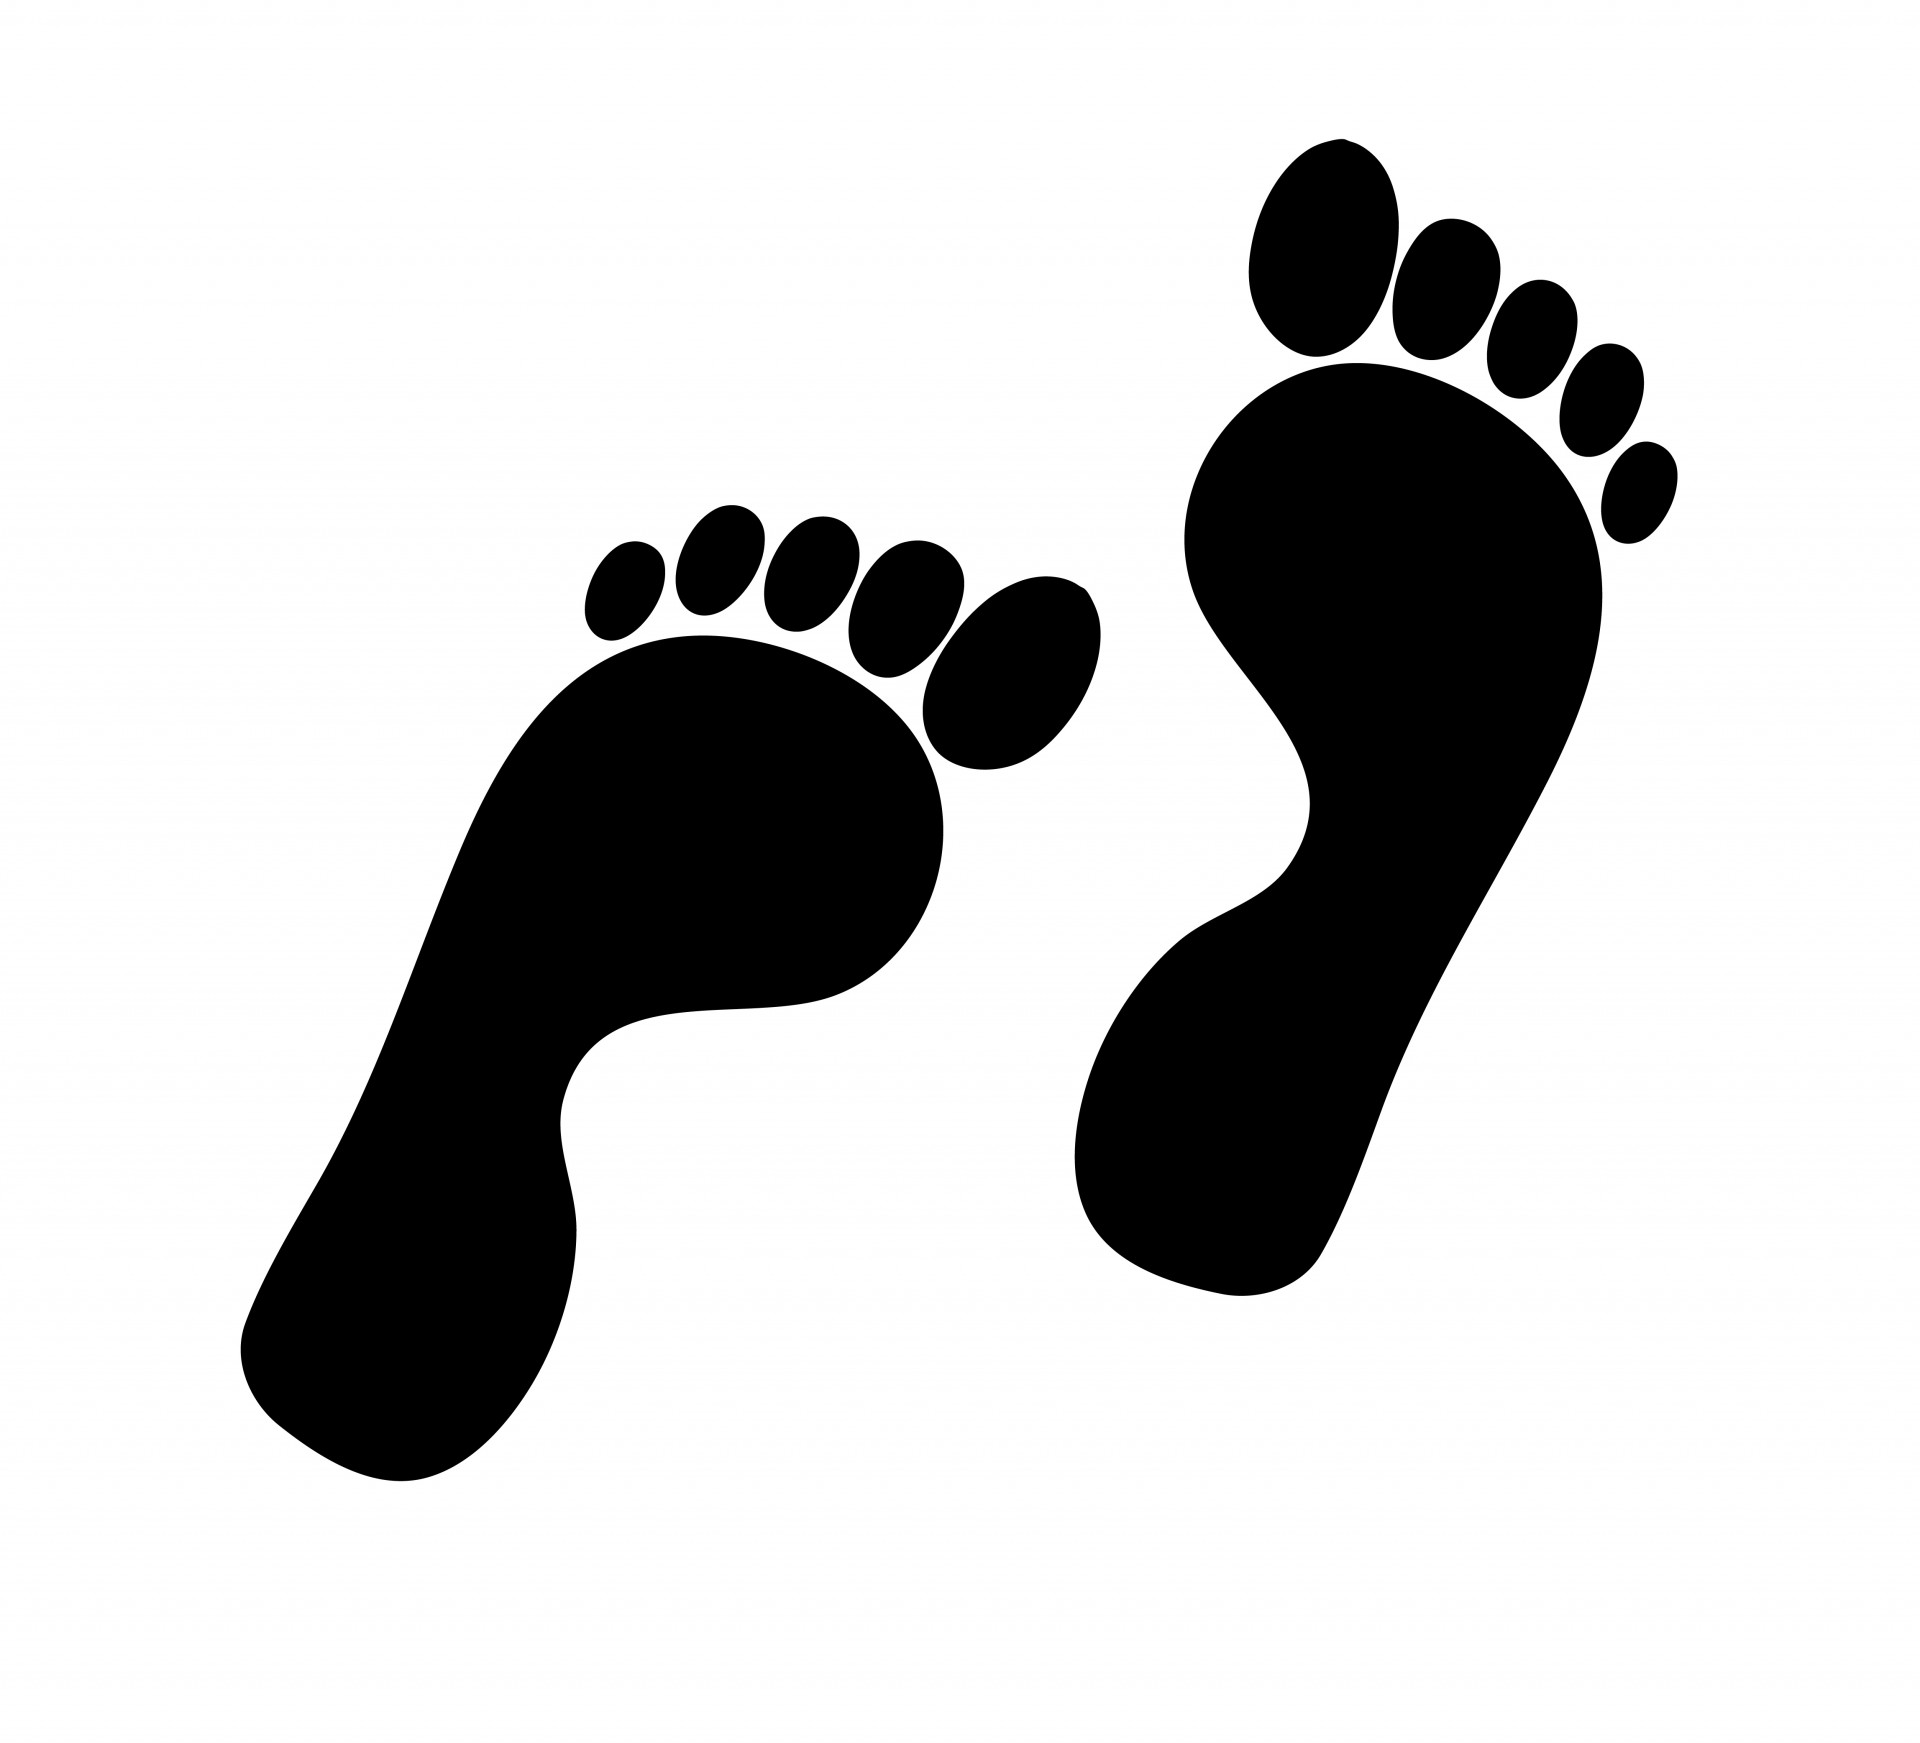 Footprints Silhouette Clipart Free Stock-Footprints Silhouette Clipart Free Stock Photo Hd Public Domain-9